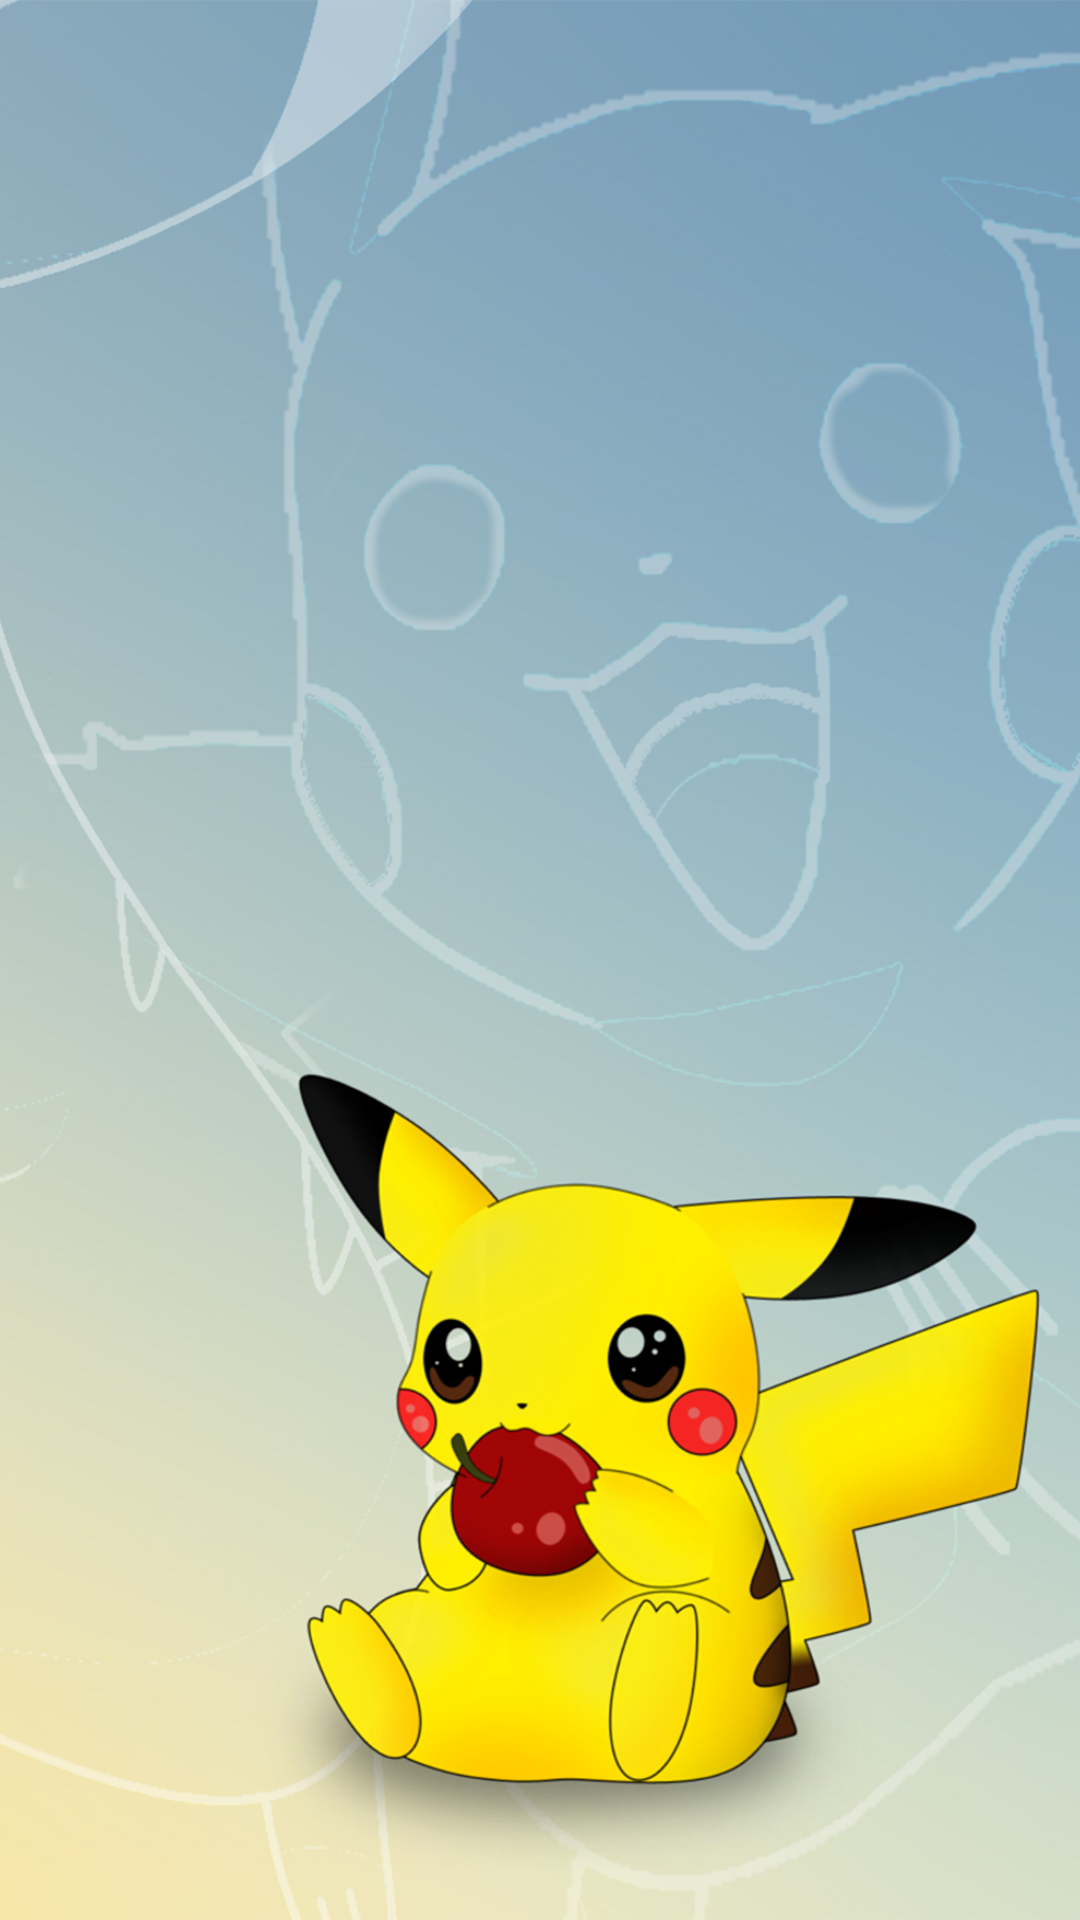 pikachu hd wallpapers for iphone 6 plus wallpaperspictures